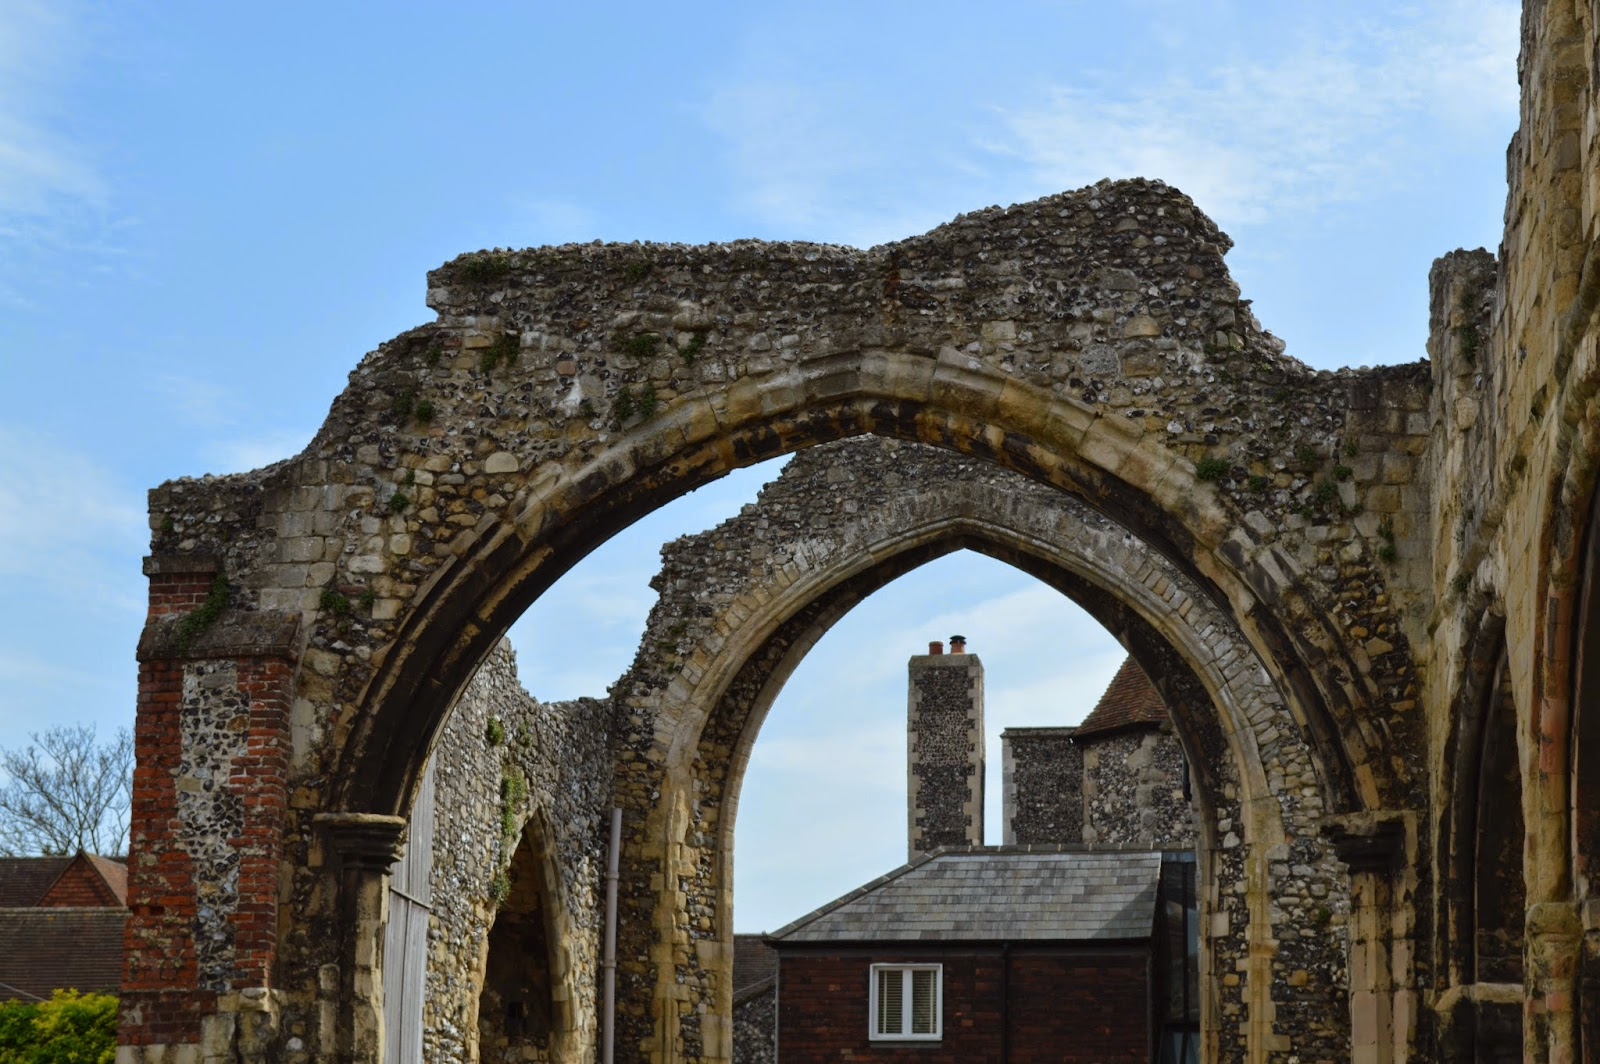 ruin, arches, arch, Christian, Canterbury Cathedral, Thomas Becket, martyr, Saint Augustine, worship, church, visit, Kent, day trip, religious, old, medieval, stained glass, impressive, big, history, historical, spires, decorated, photo, photograph